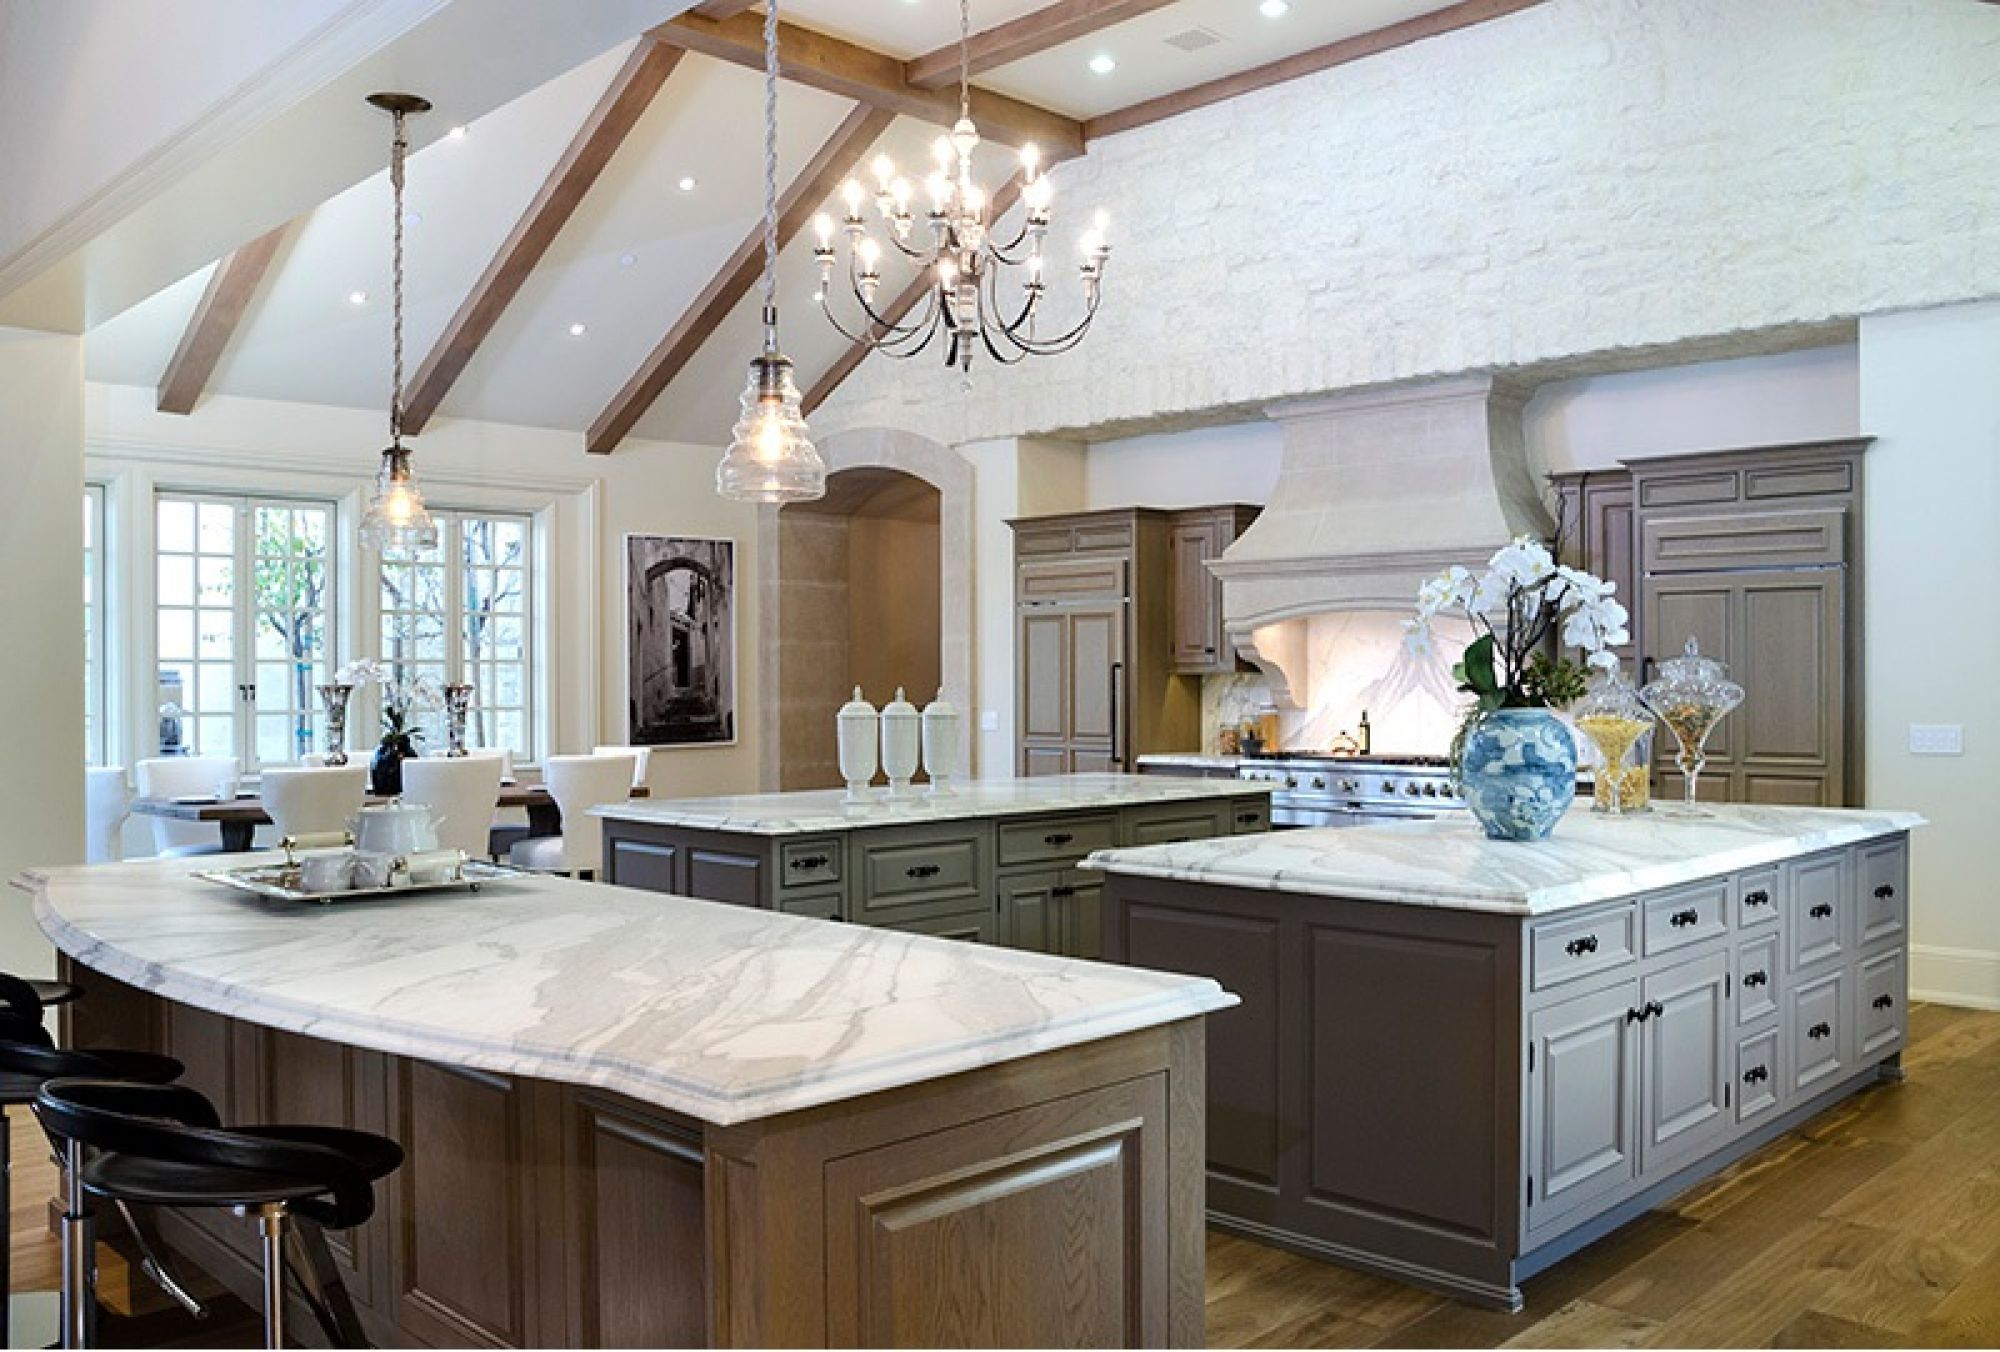 images of million dollar kitchens Google Search